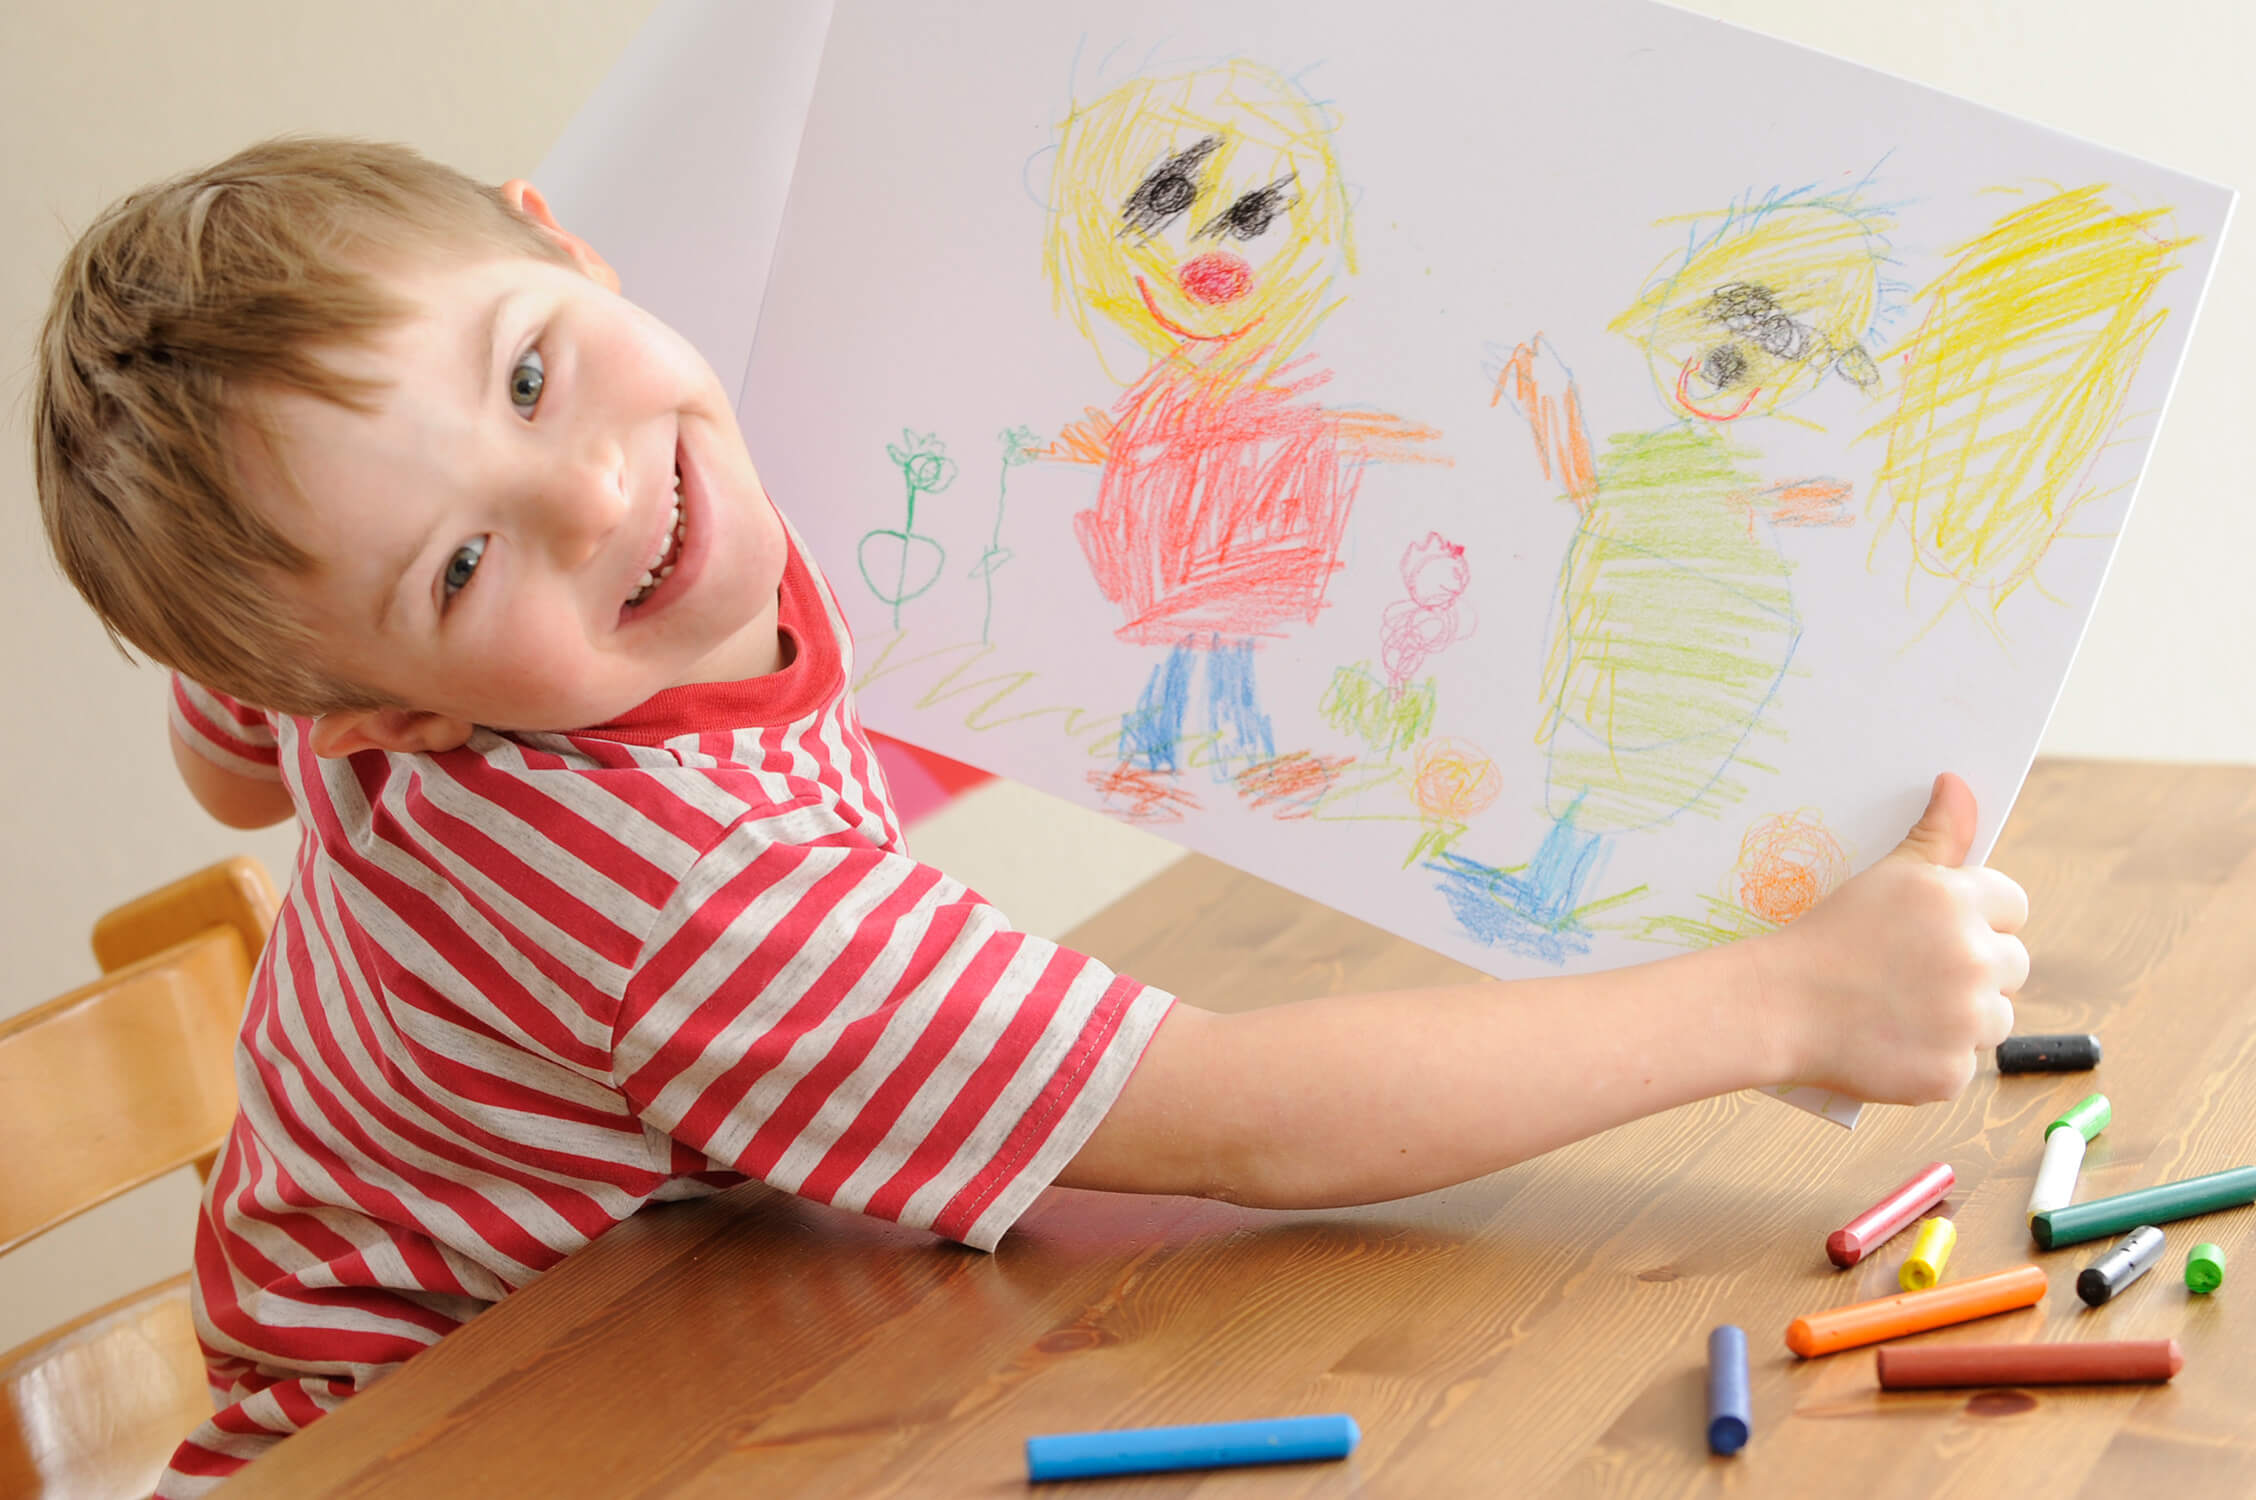 A cropped image taken of a young boy from above who is smiling up to the camera. He is holding a coloured drawing he has done.